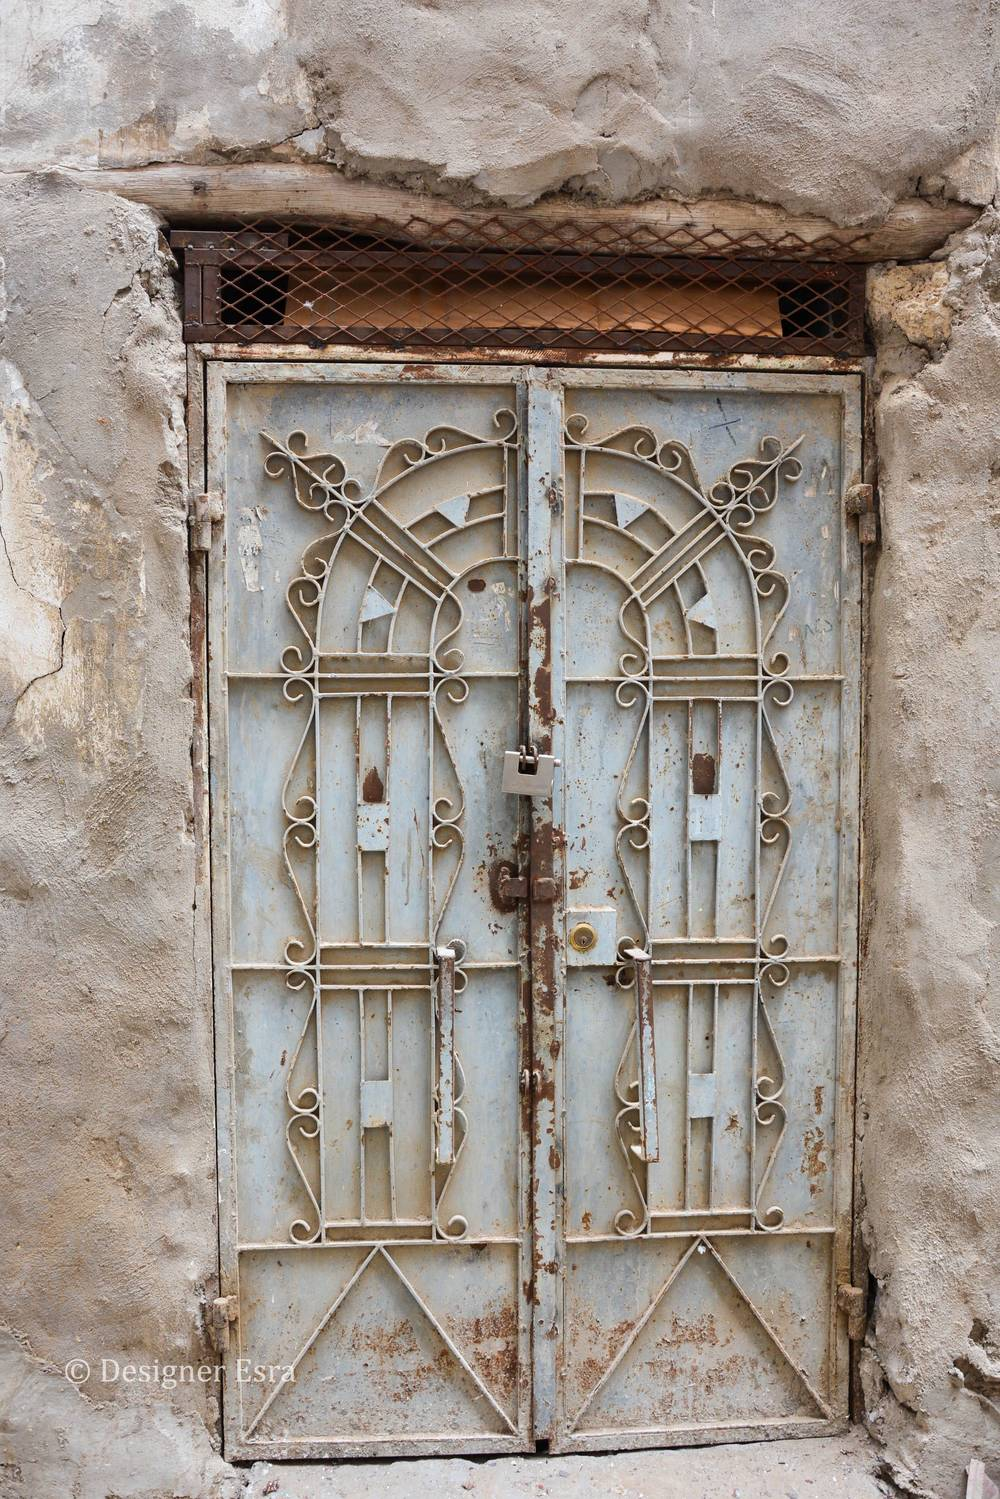 Rustic Metal Door in Saudi